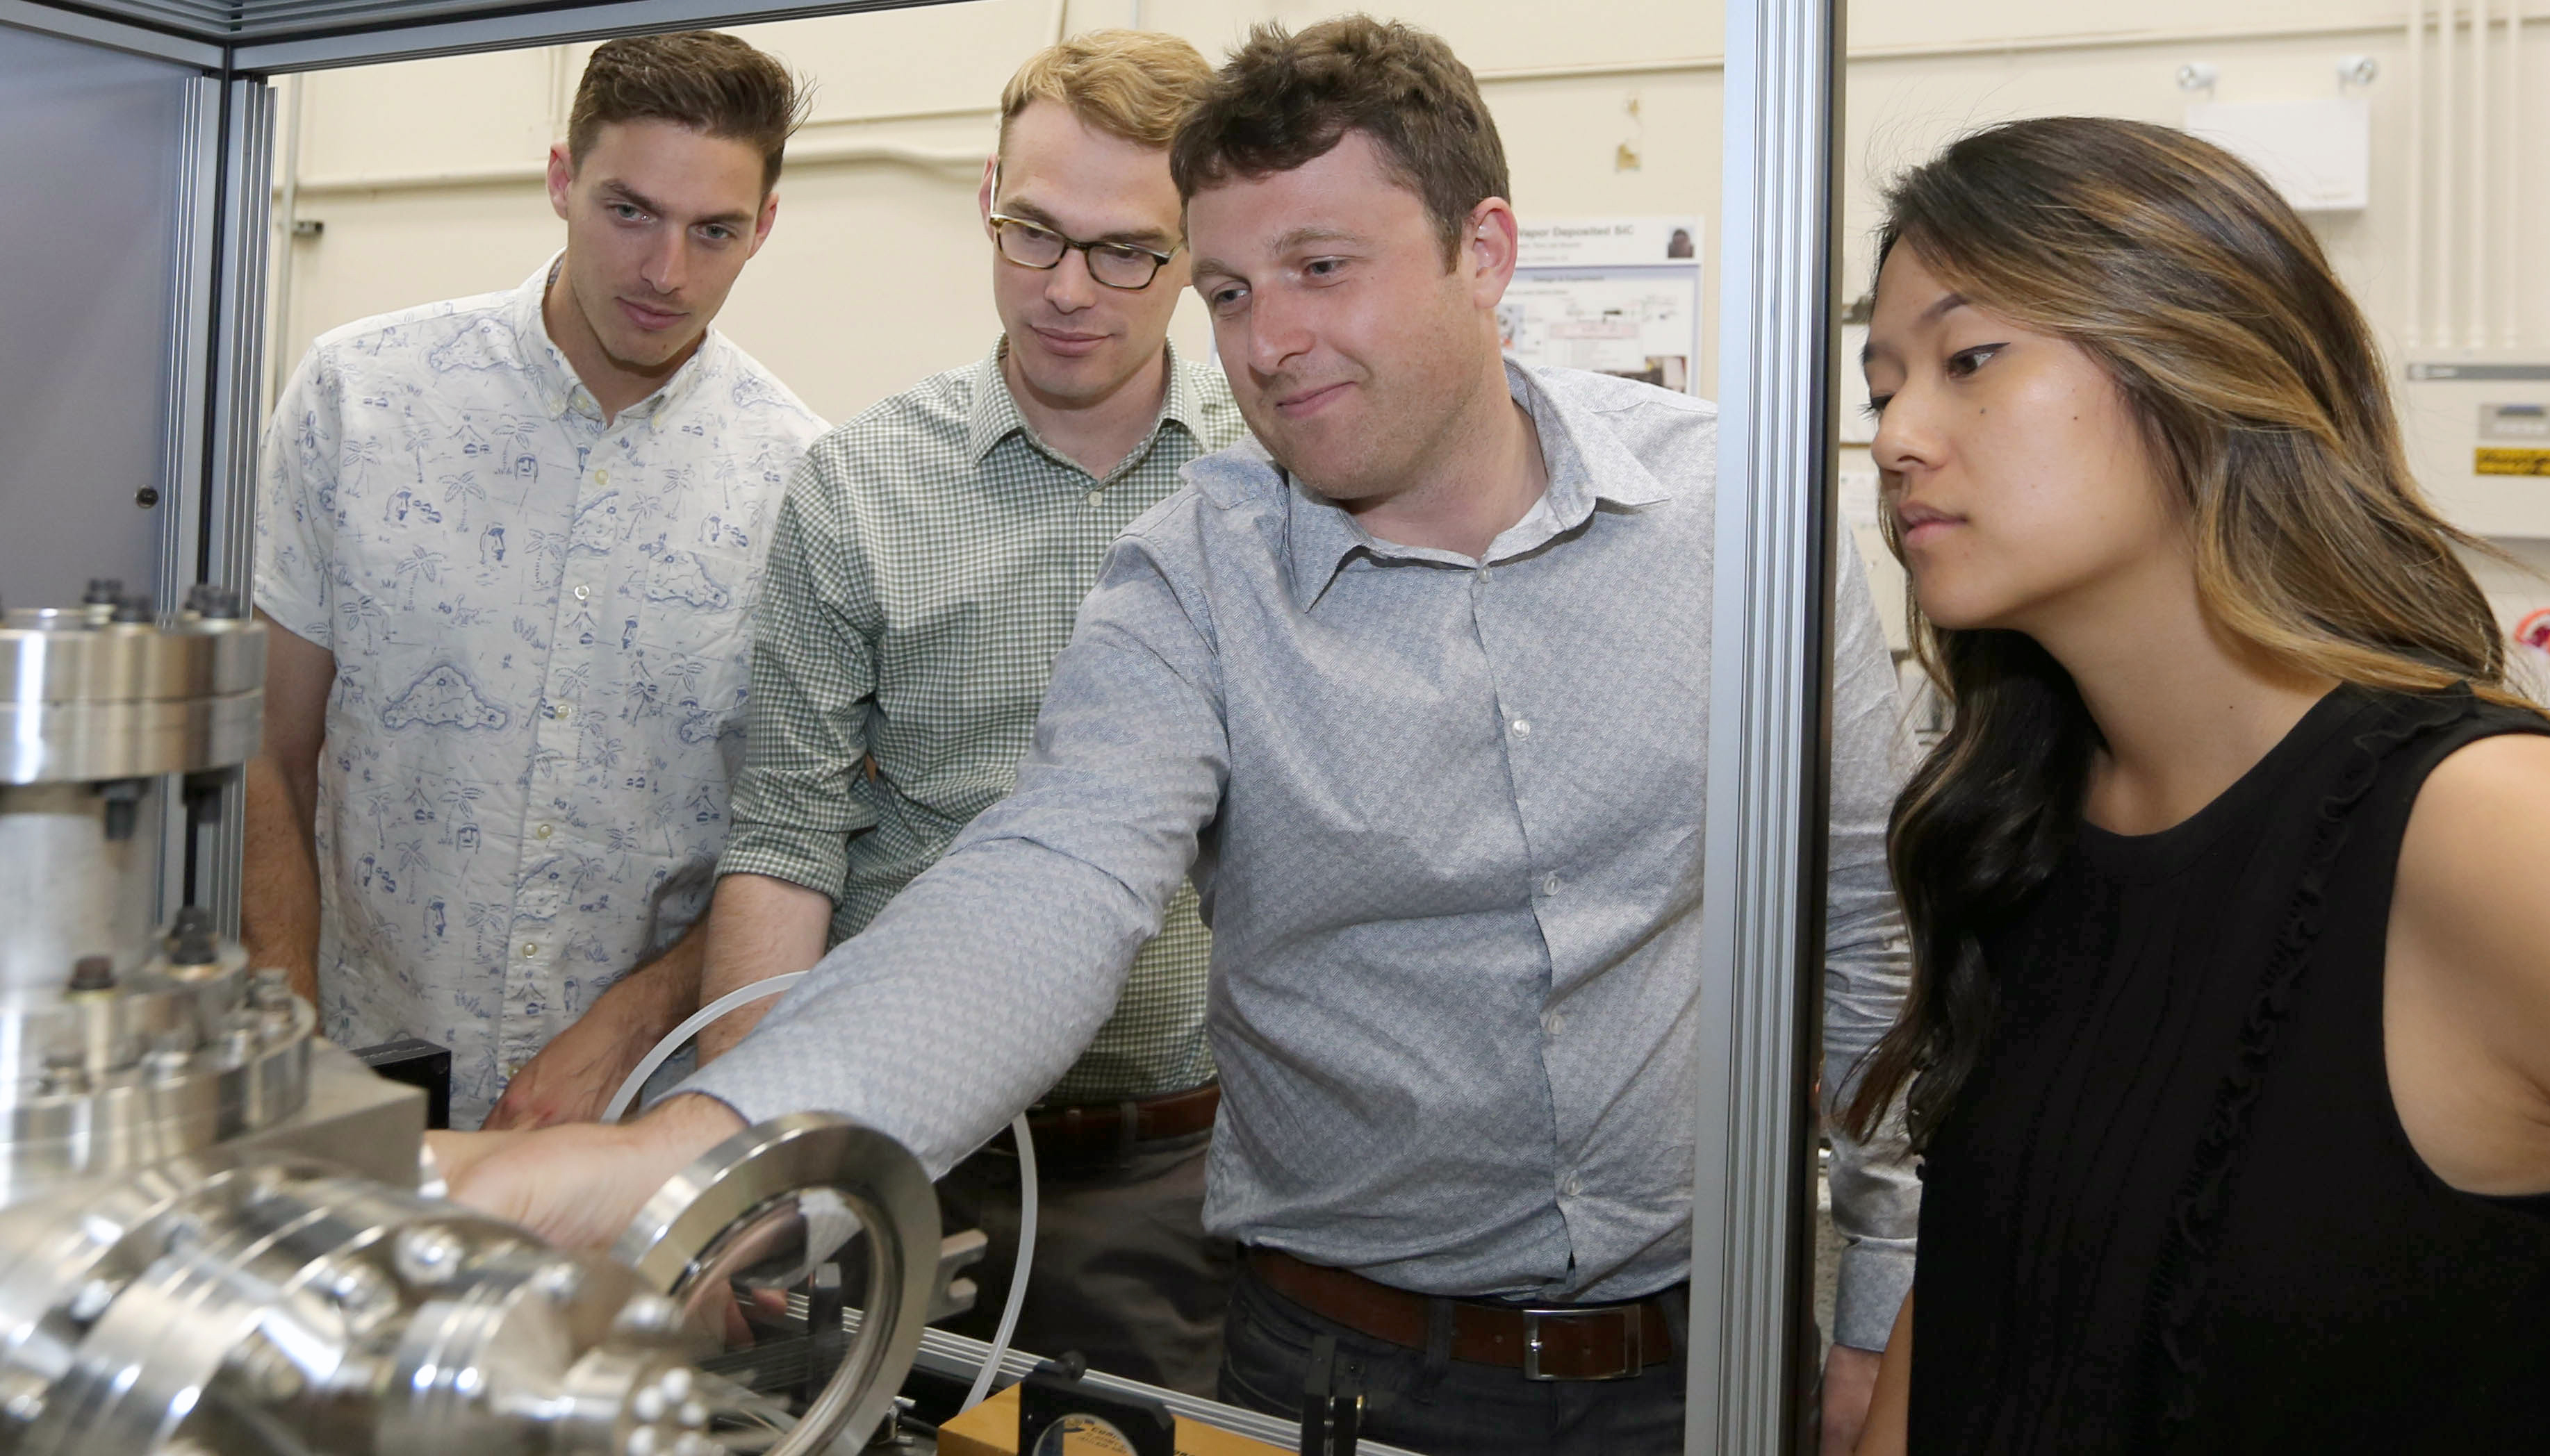 Lawrence Livermore National Laboratory researchers (from left) Phil Depond, Nick Calta, Aiden Martin and Jenny Wang. Photo via LLNL.